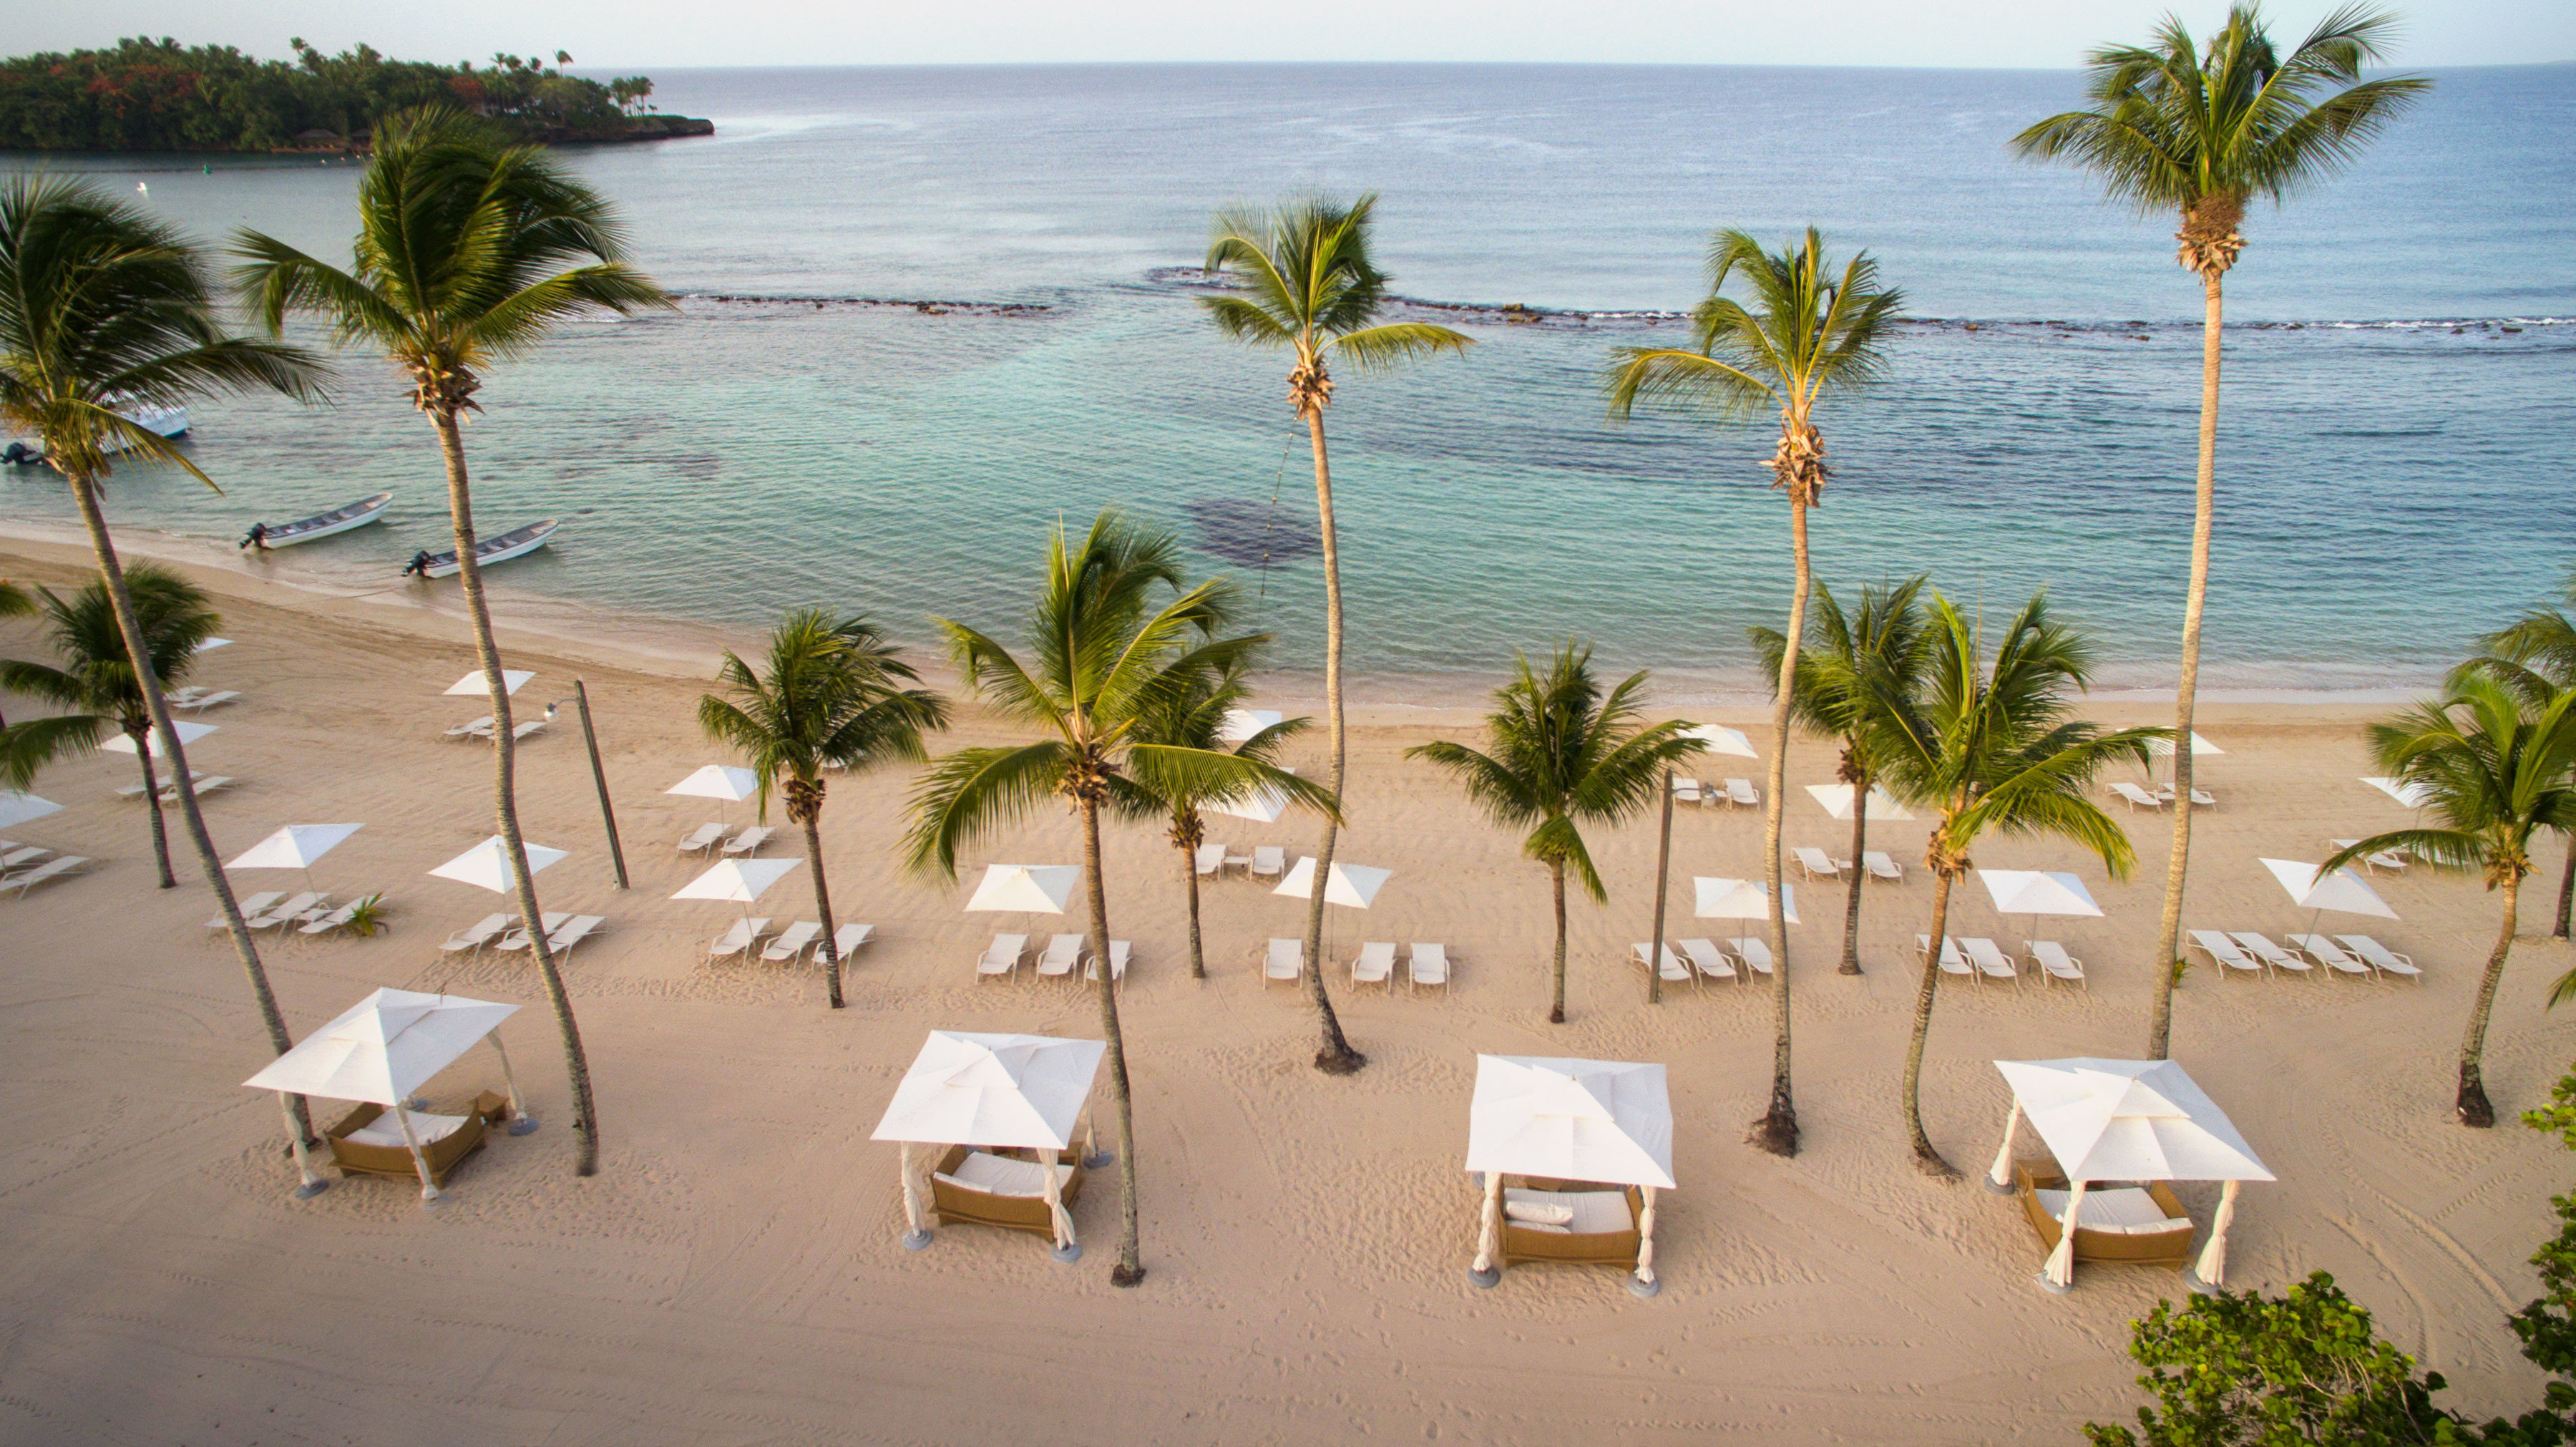 Budget water tree palm outdoor Beach vacation arecales plant palm family Sea Resort caribbean shore sand furniture